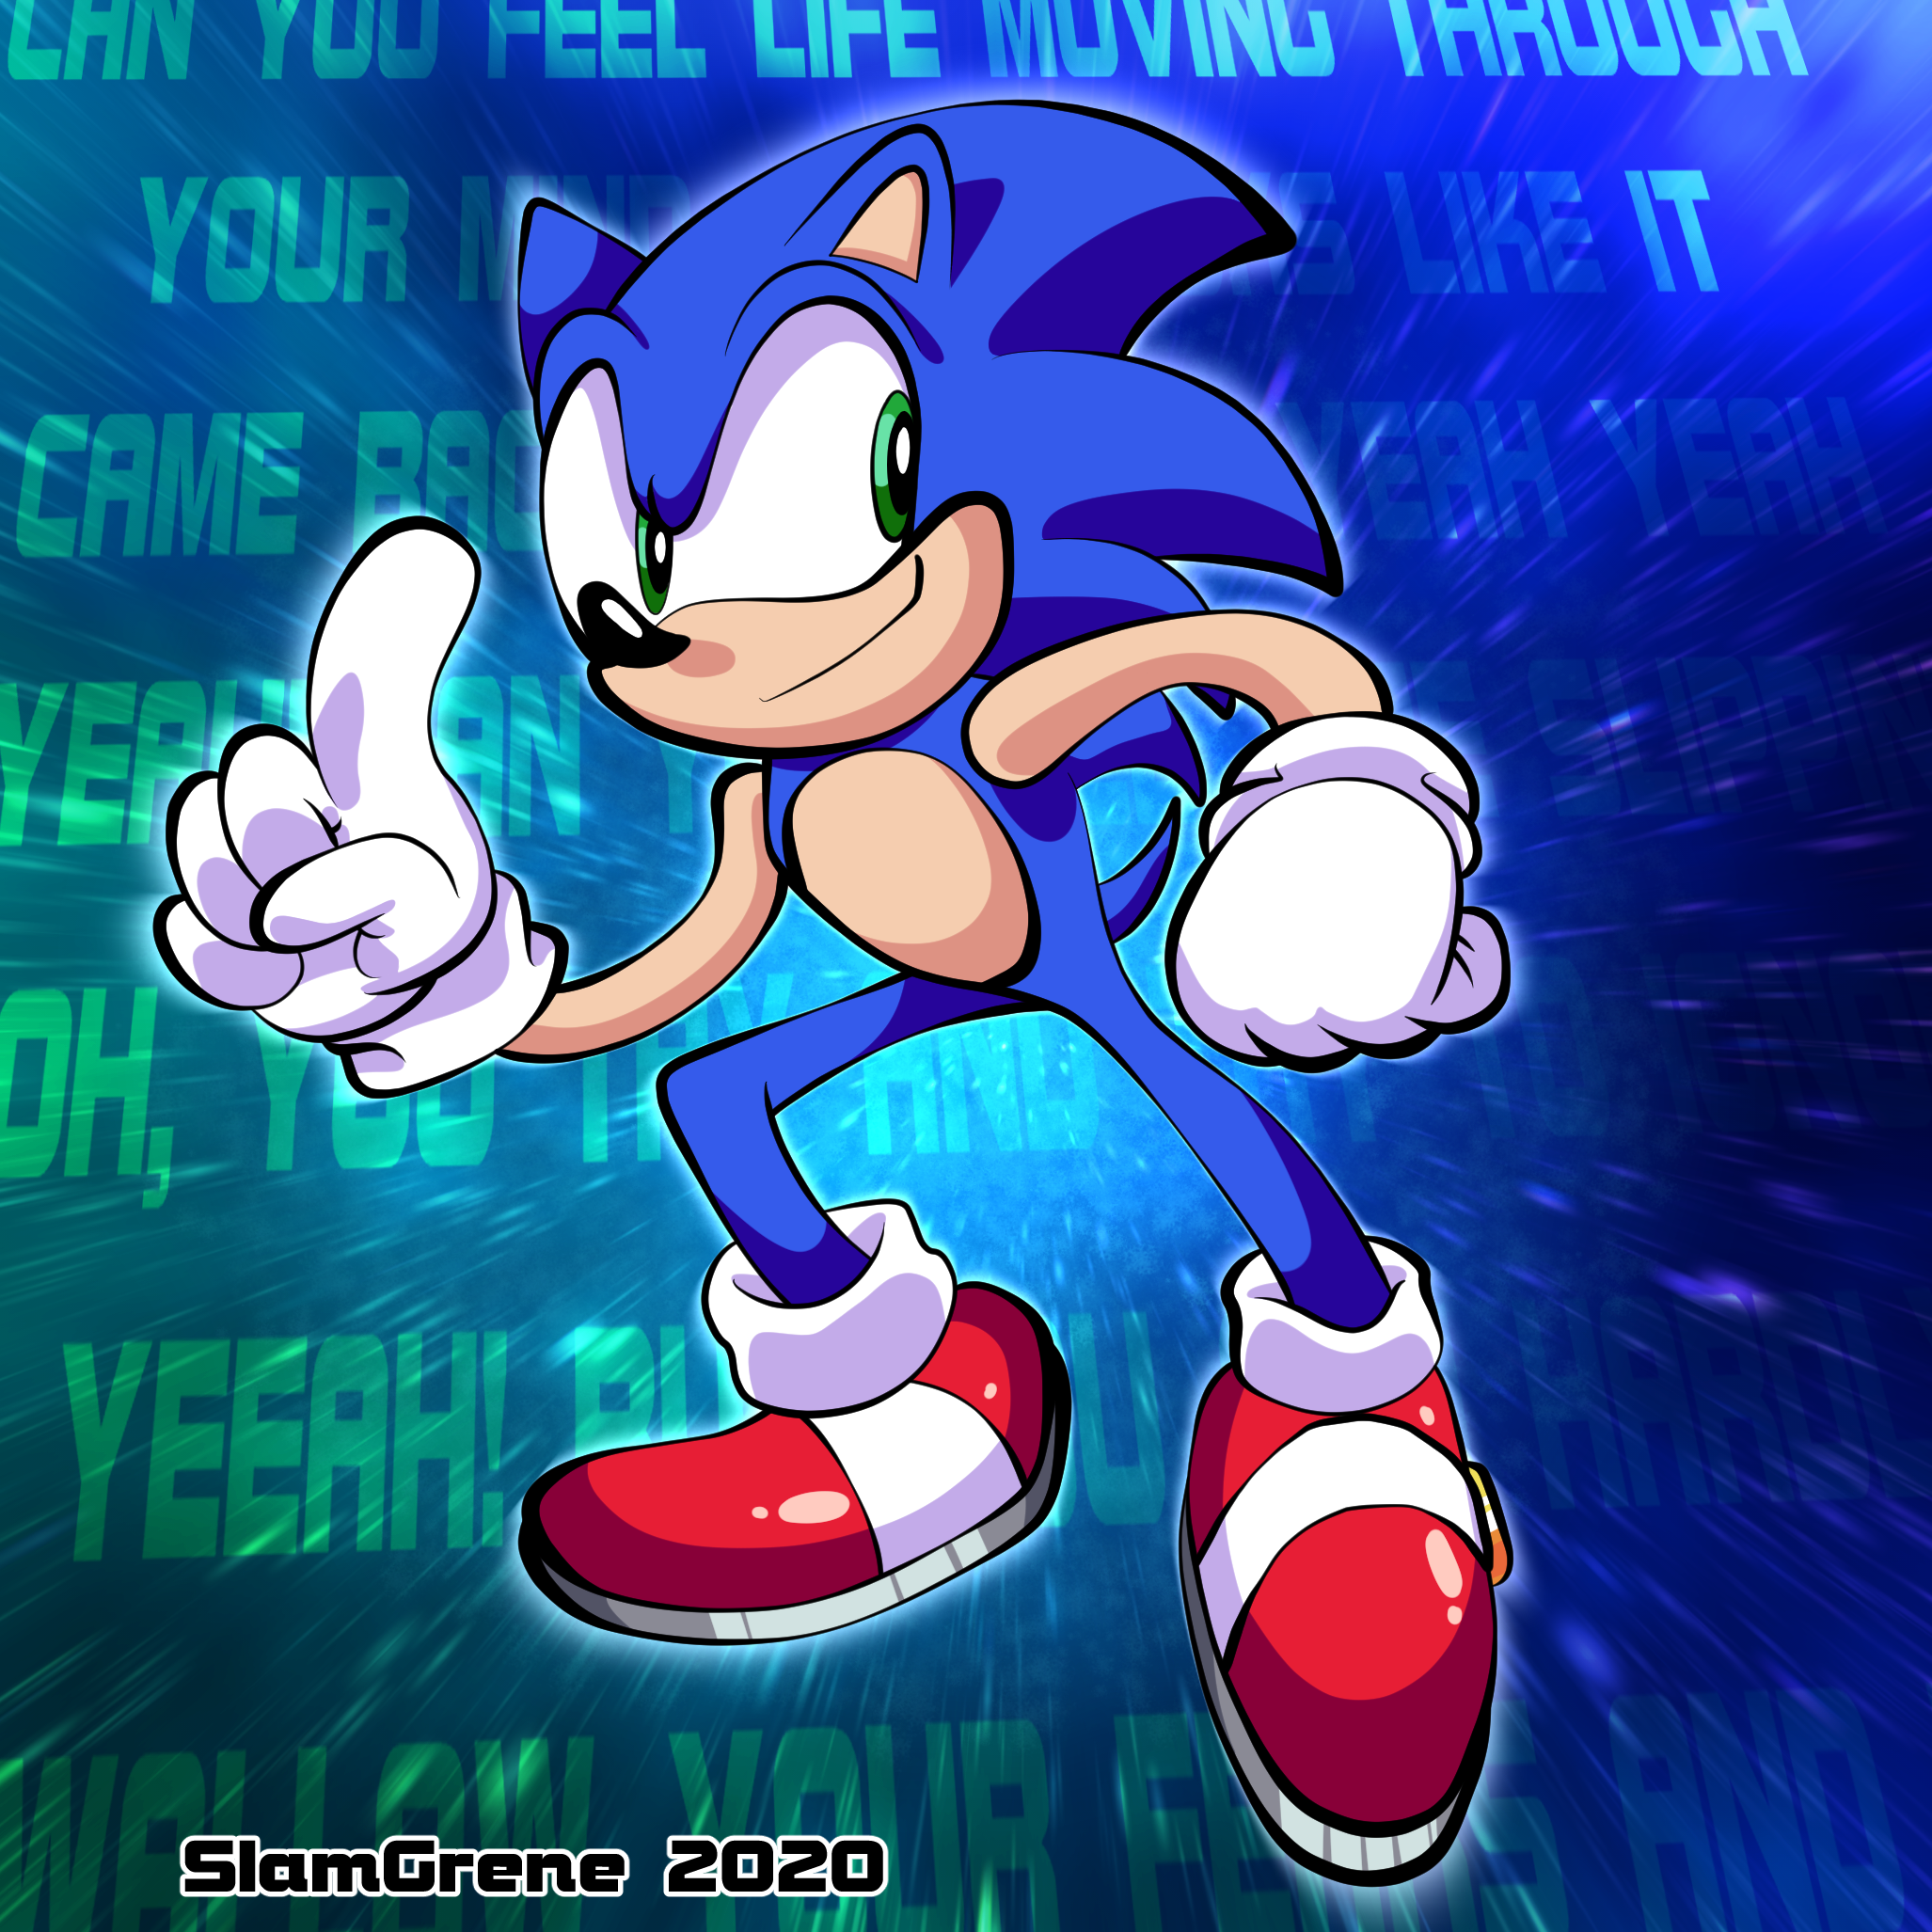 [Witty title relating to Sonic]